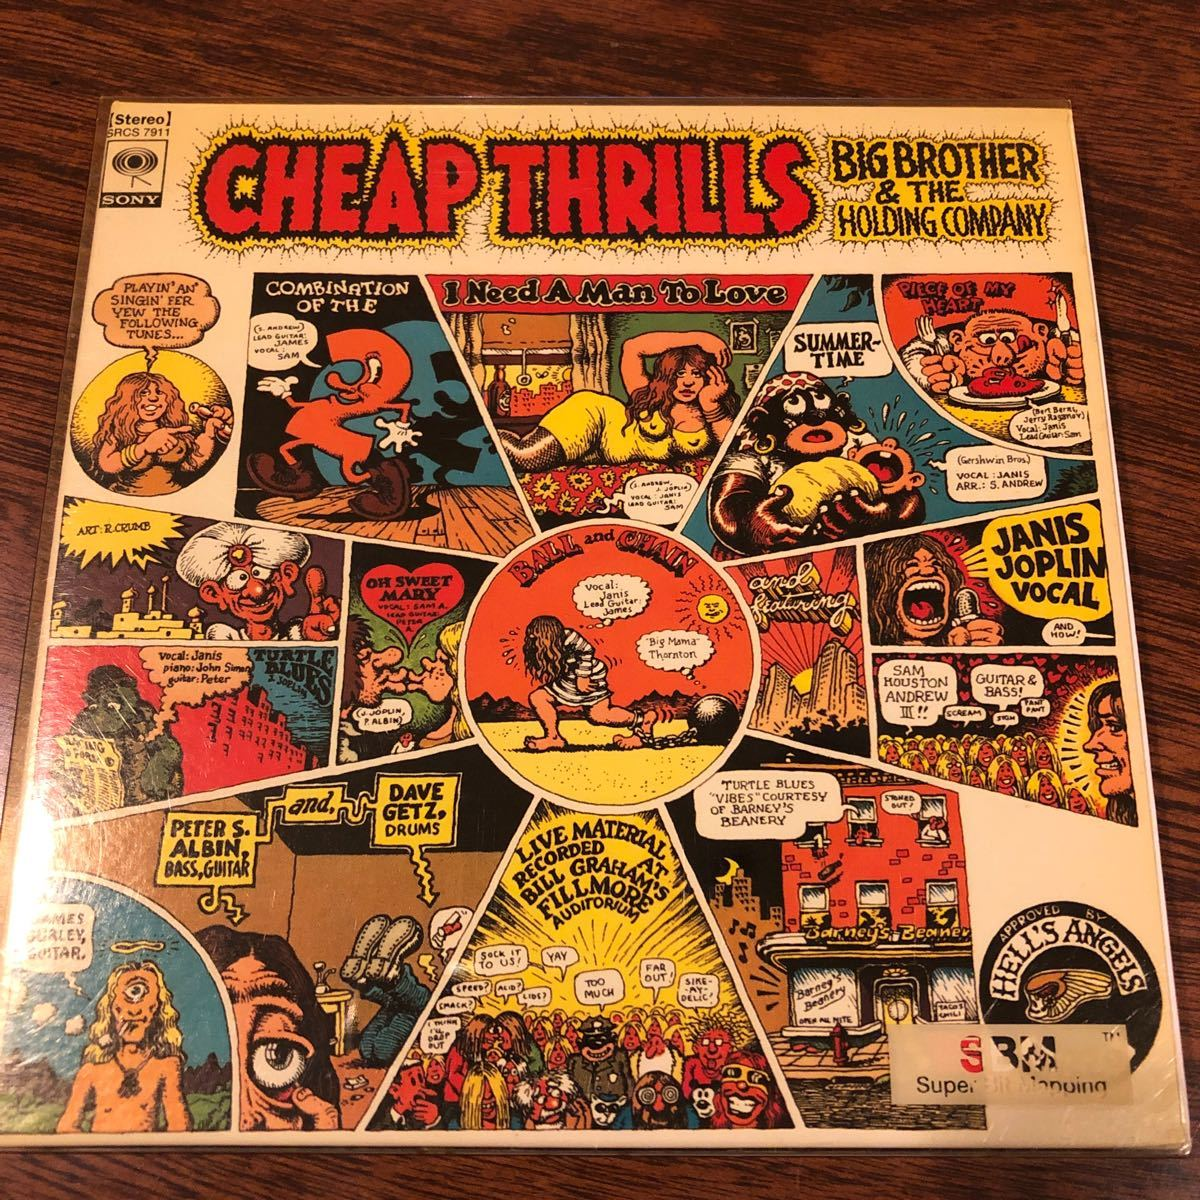 JANIS JOPLIN BIG BROTHER & THE HOLDING COMPANY / CHEAP THRILLS